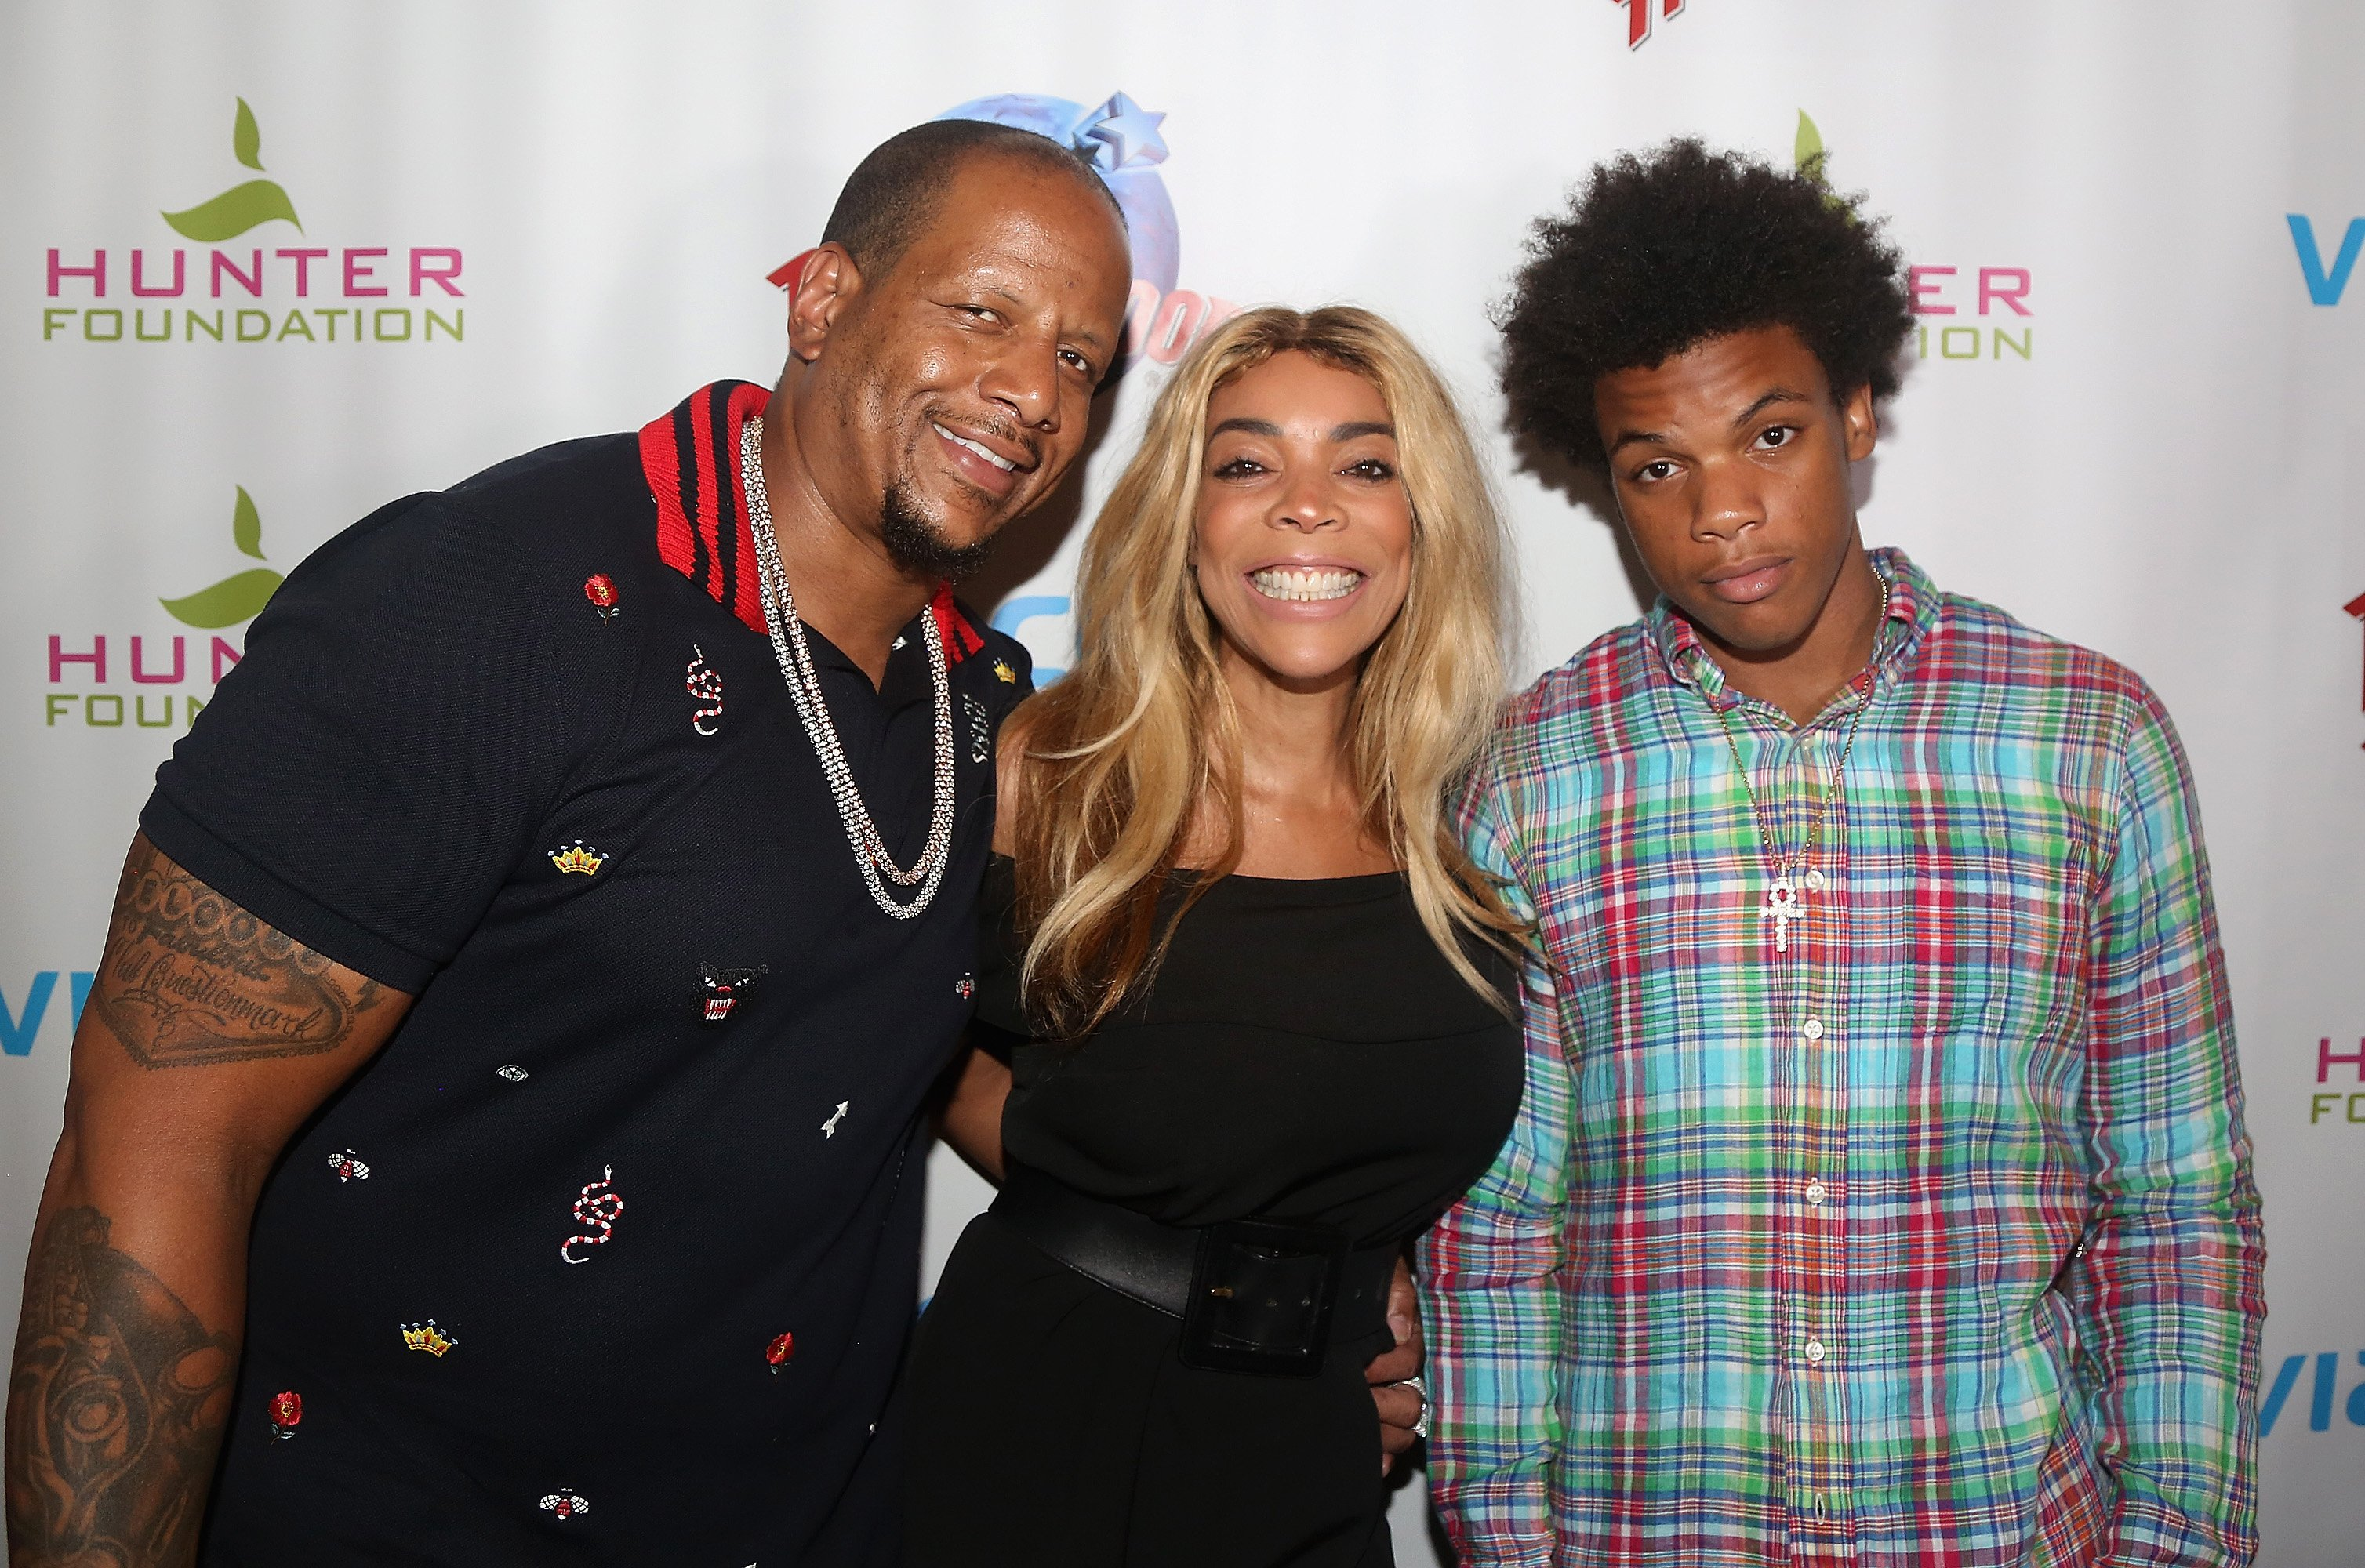 (L-R) Kevin Hunter Sr., Wendy Williams & Kevin Hunter Jr. in New York City on July 11, 2017 | Photo: Getty Images